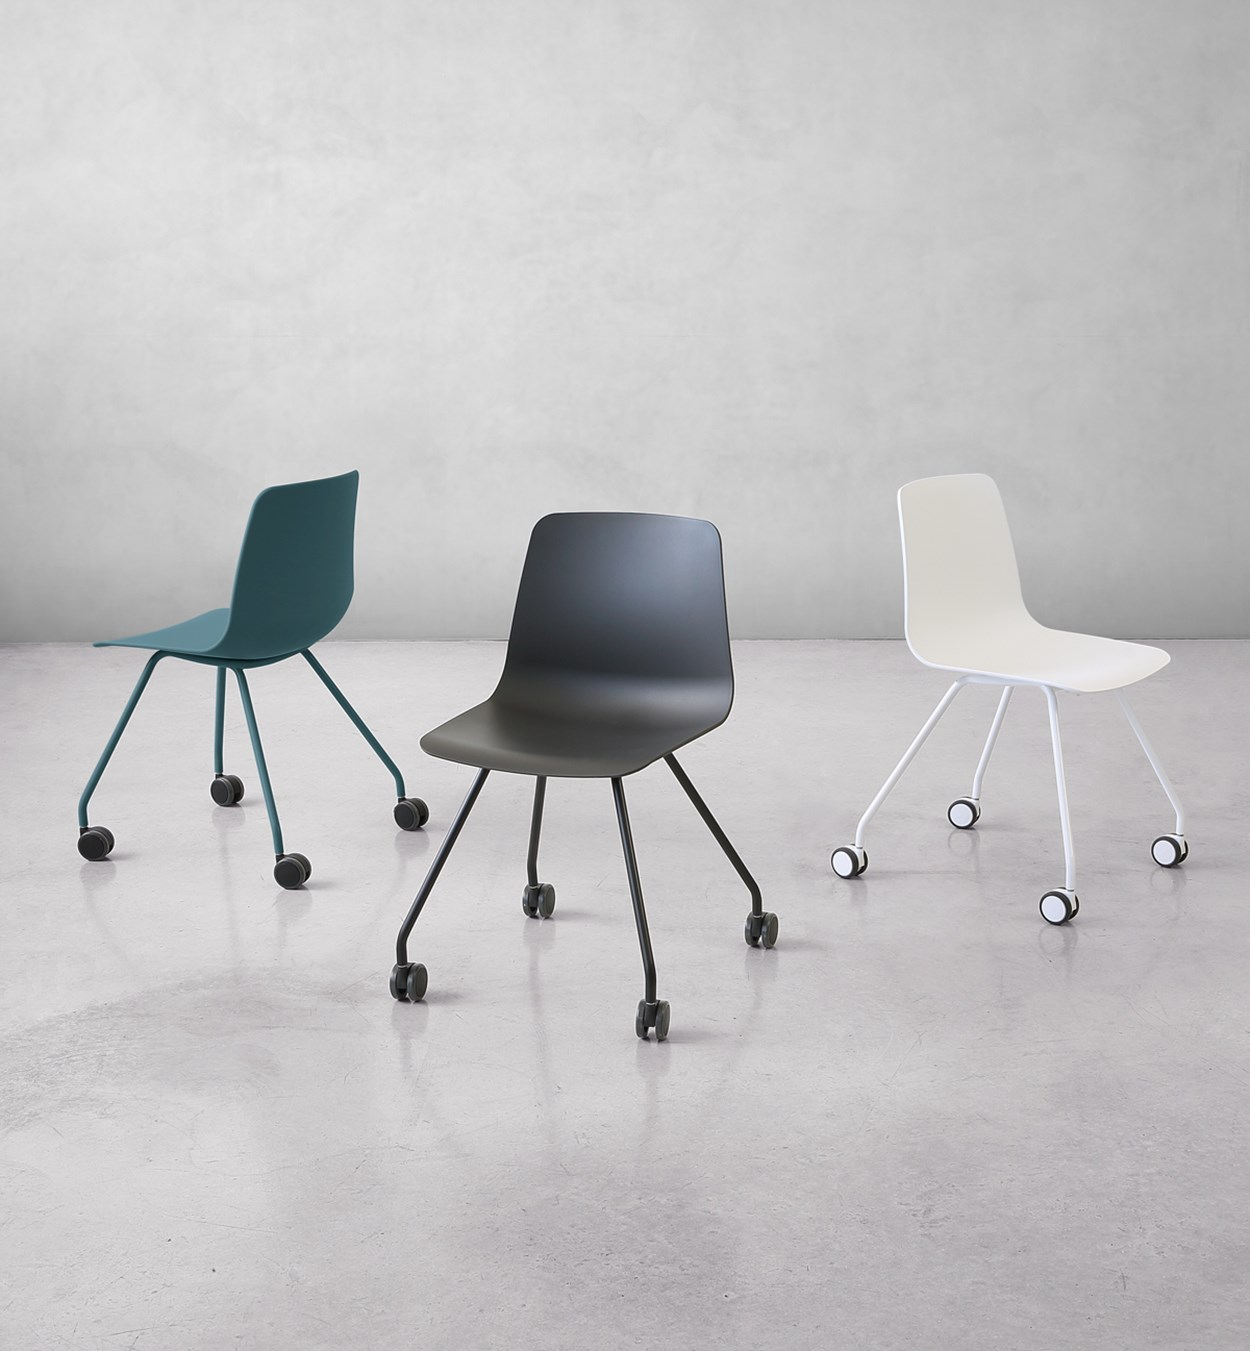 inclass-varya-collection-chair-01.jpg